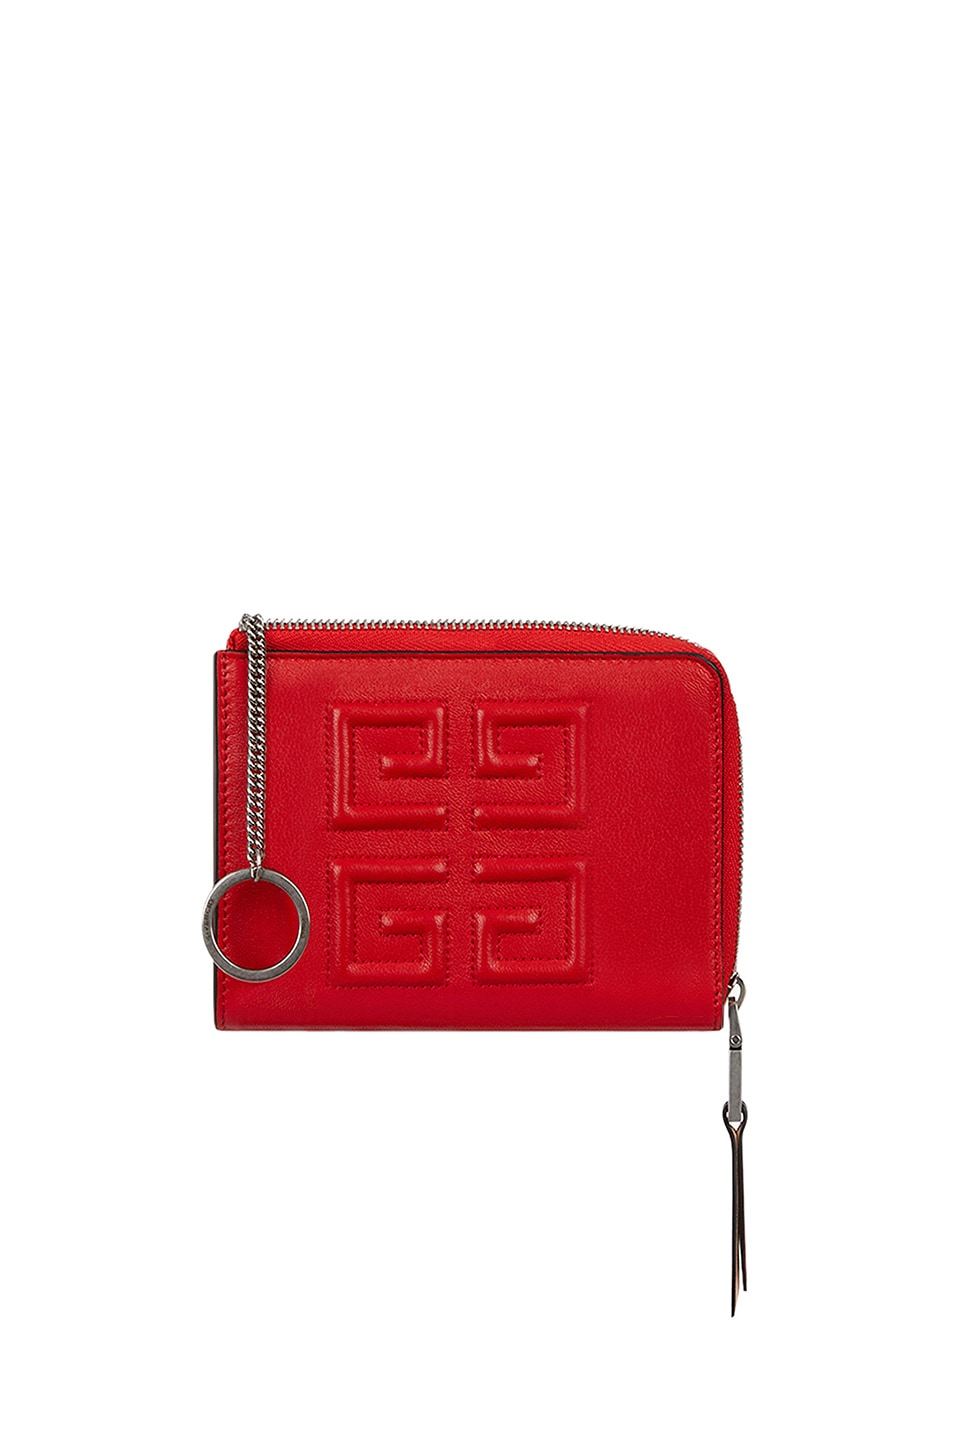 Image 5 of Givenchy Medium Emblem Zip Wallet in Poppy Red